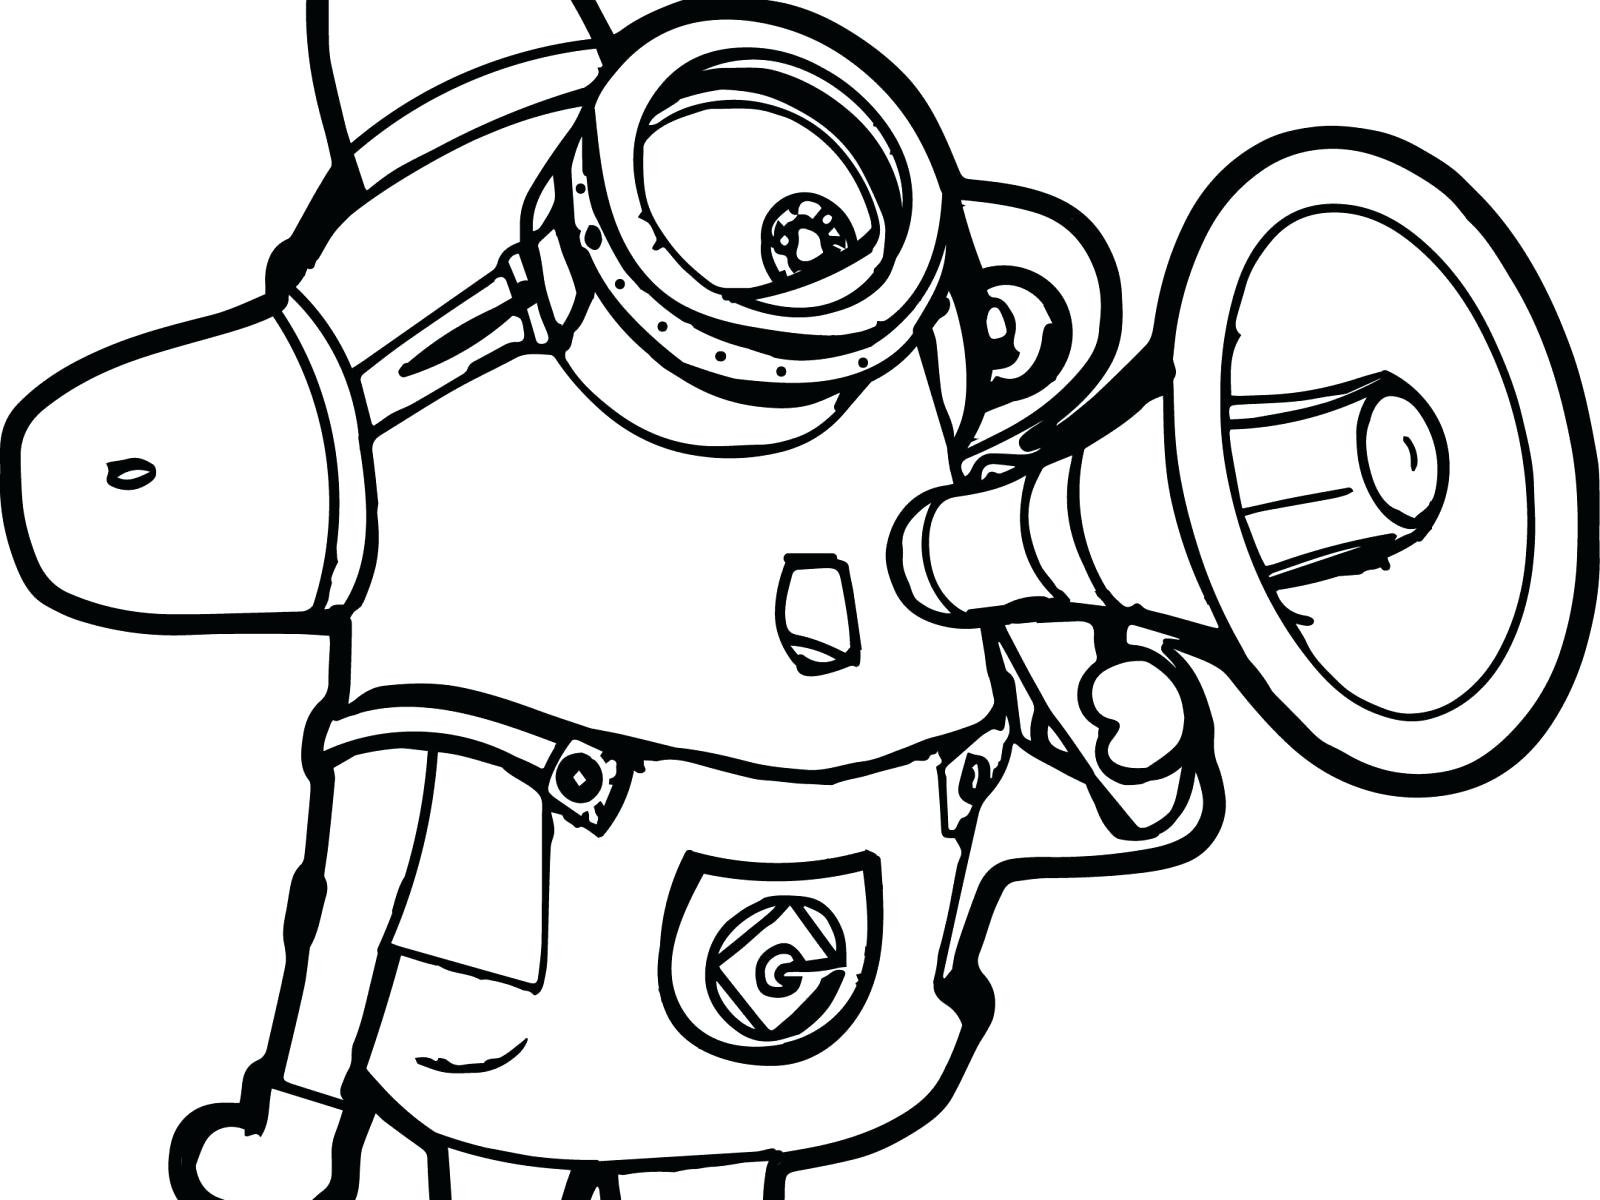 Despicable Coloring Pages Free Printable Minion Coloring Pages Bob Despicable Me Minions Page